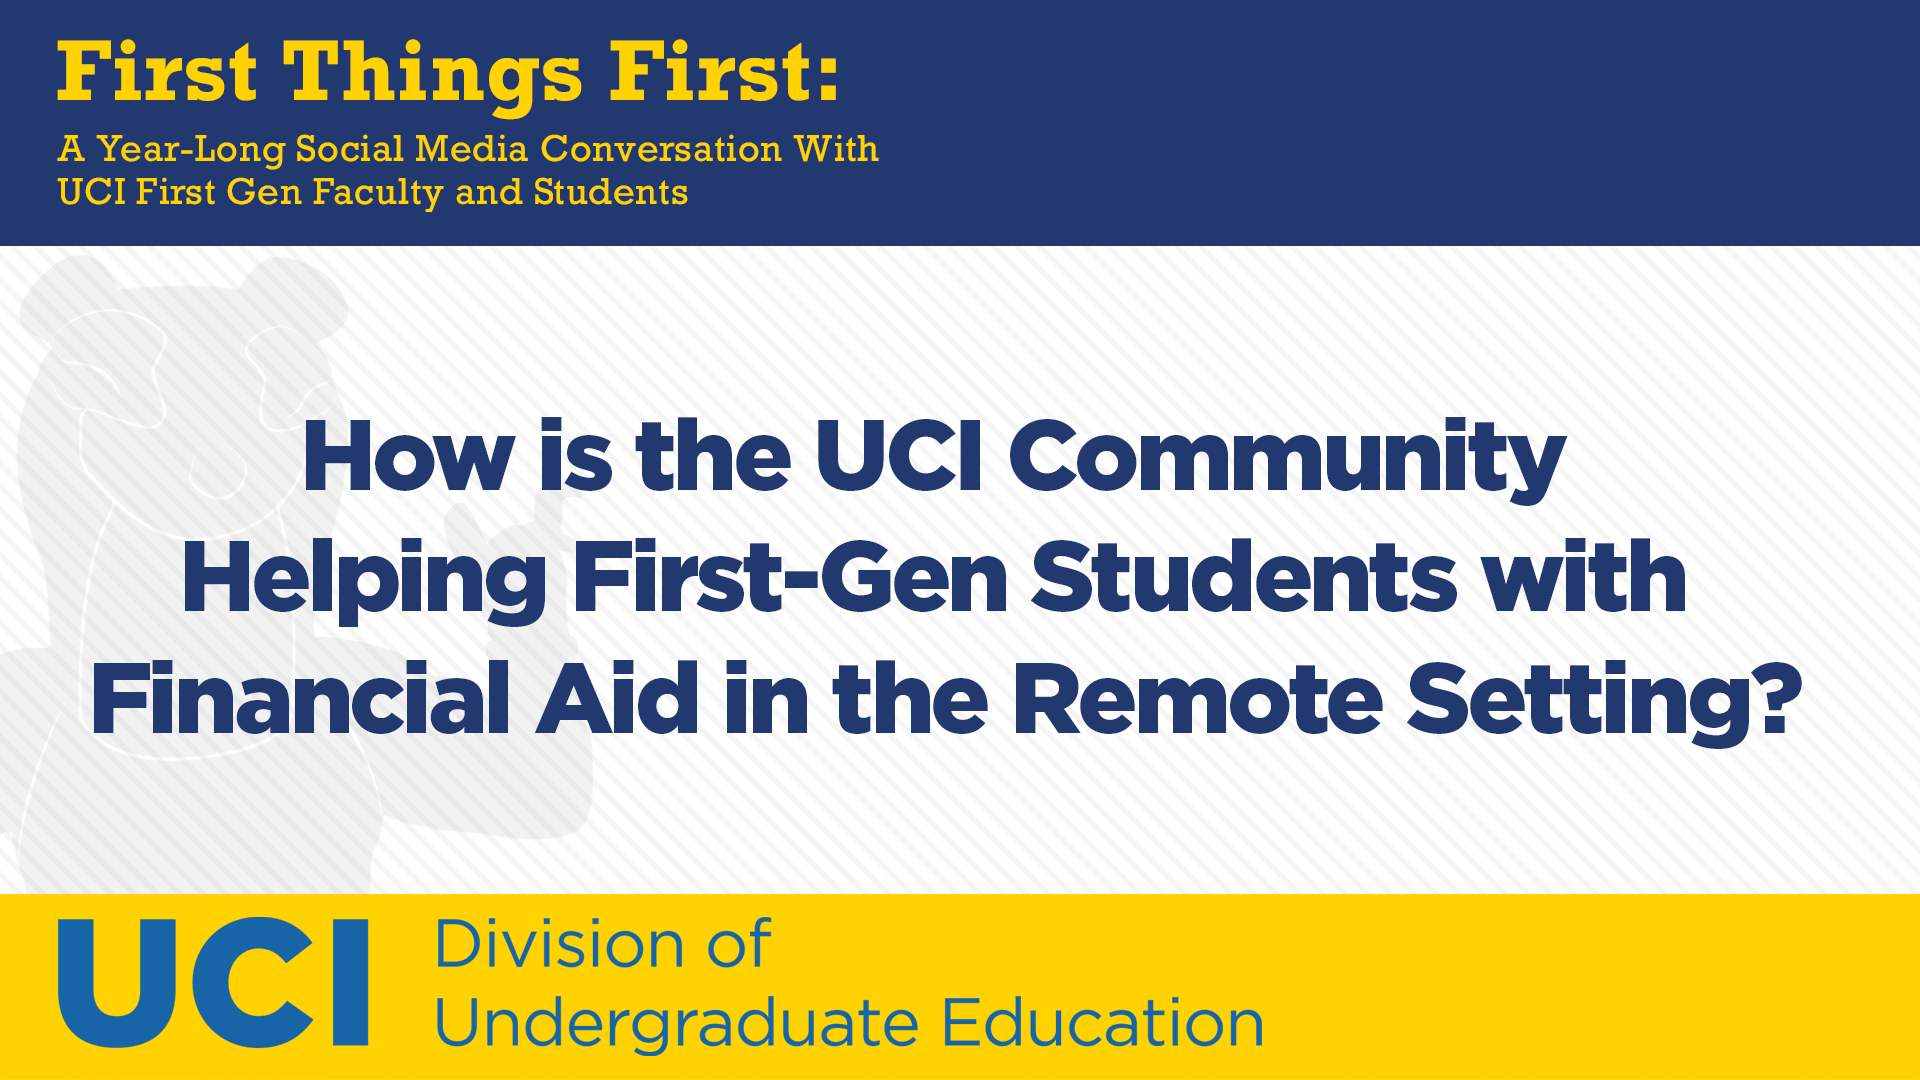 How is the UCI Community Helping First-Gen Students with Financial Aid in the Remote Setting?